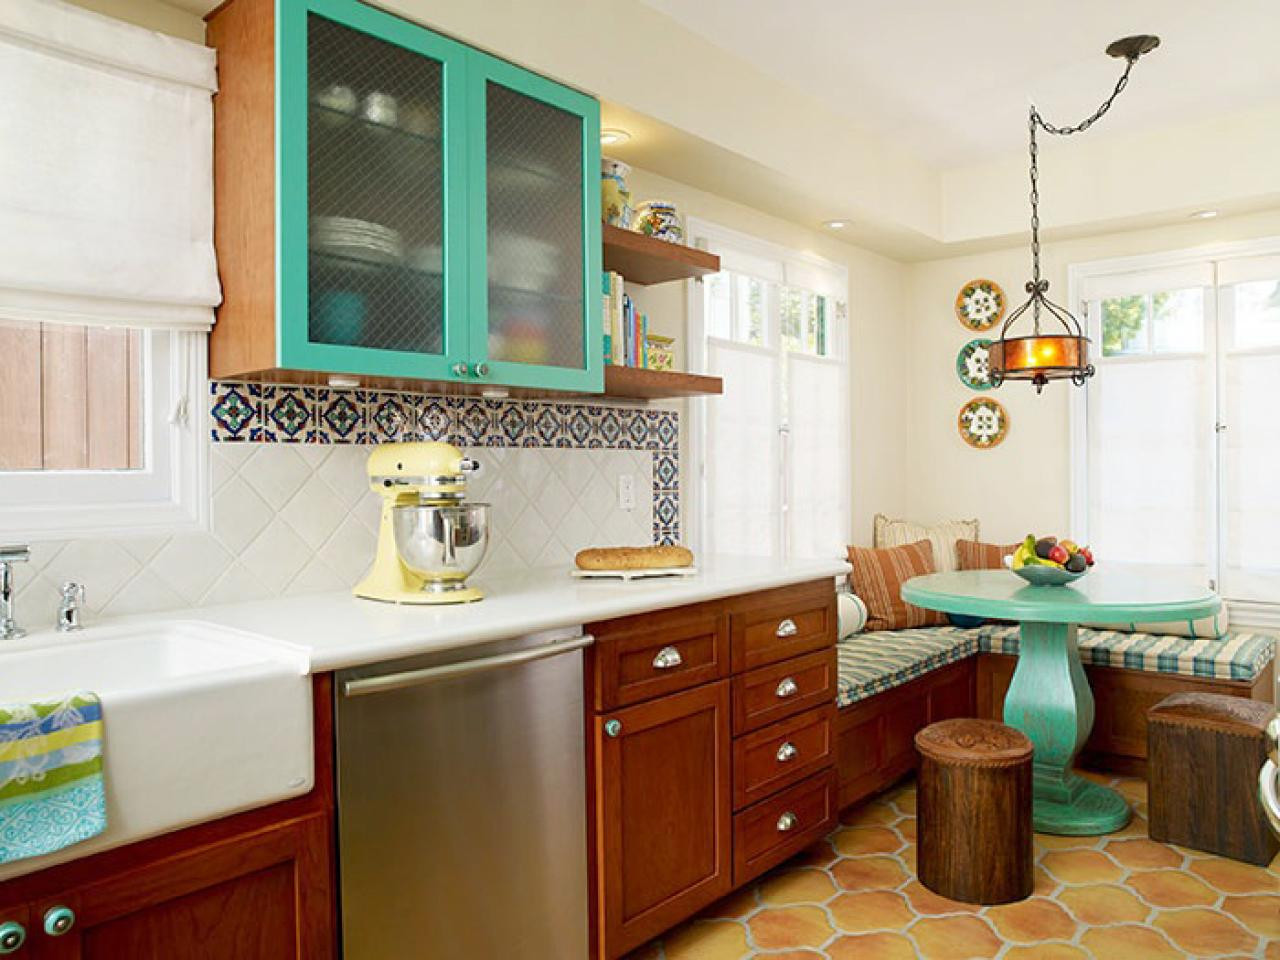 Best ideas about Kitchen Paint Color Ideas . Save or Pin Applying 16 Bright Kitchen Paint Colors Dap fice Now.